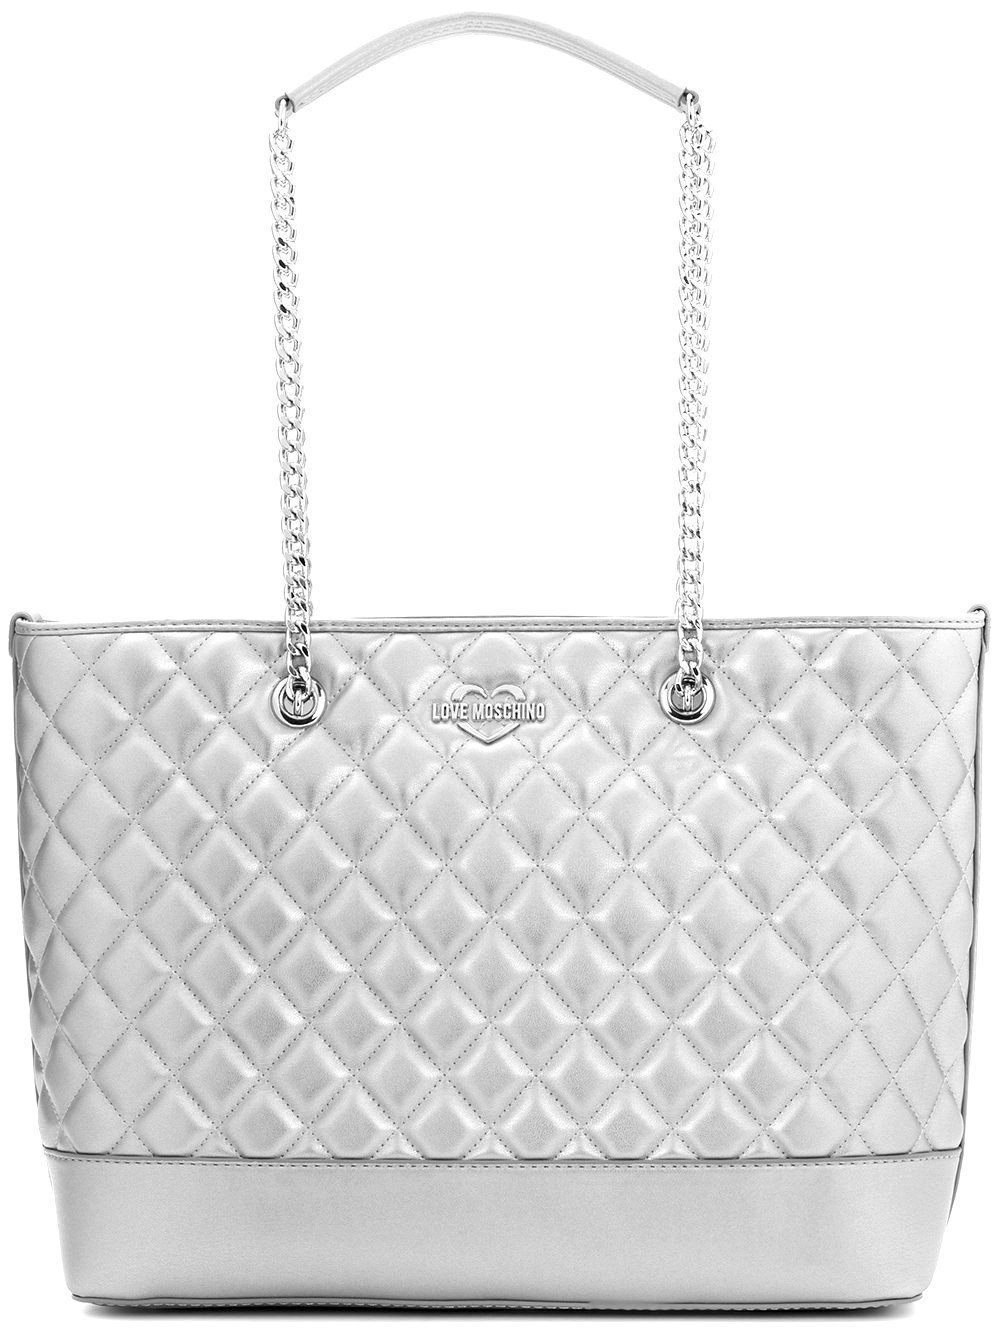 LOVE MOSCHINO Diamond Quilted Logo Shoulder Tote Bag, Silver